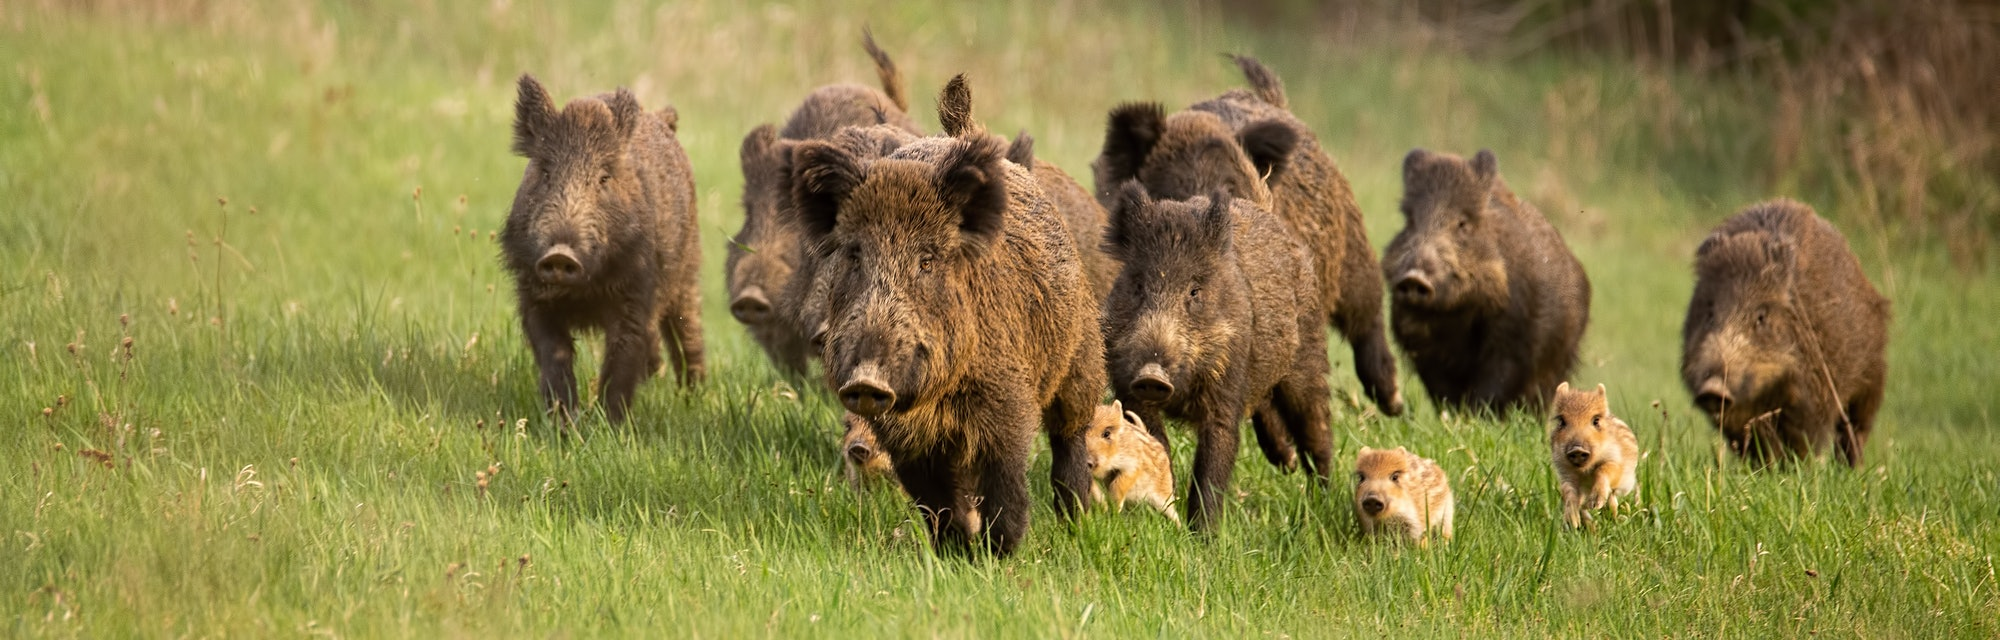 Willd hogs running in a group